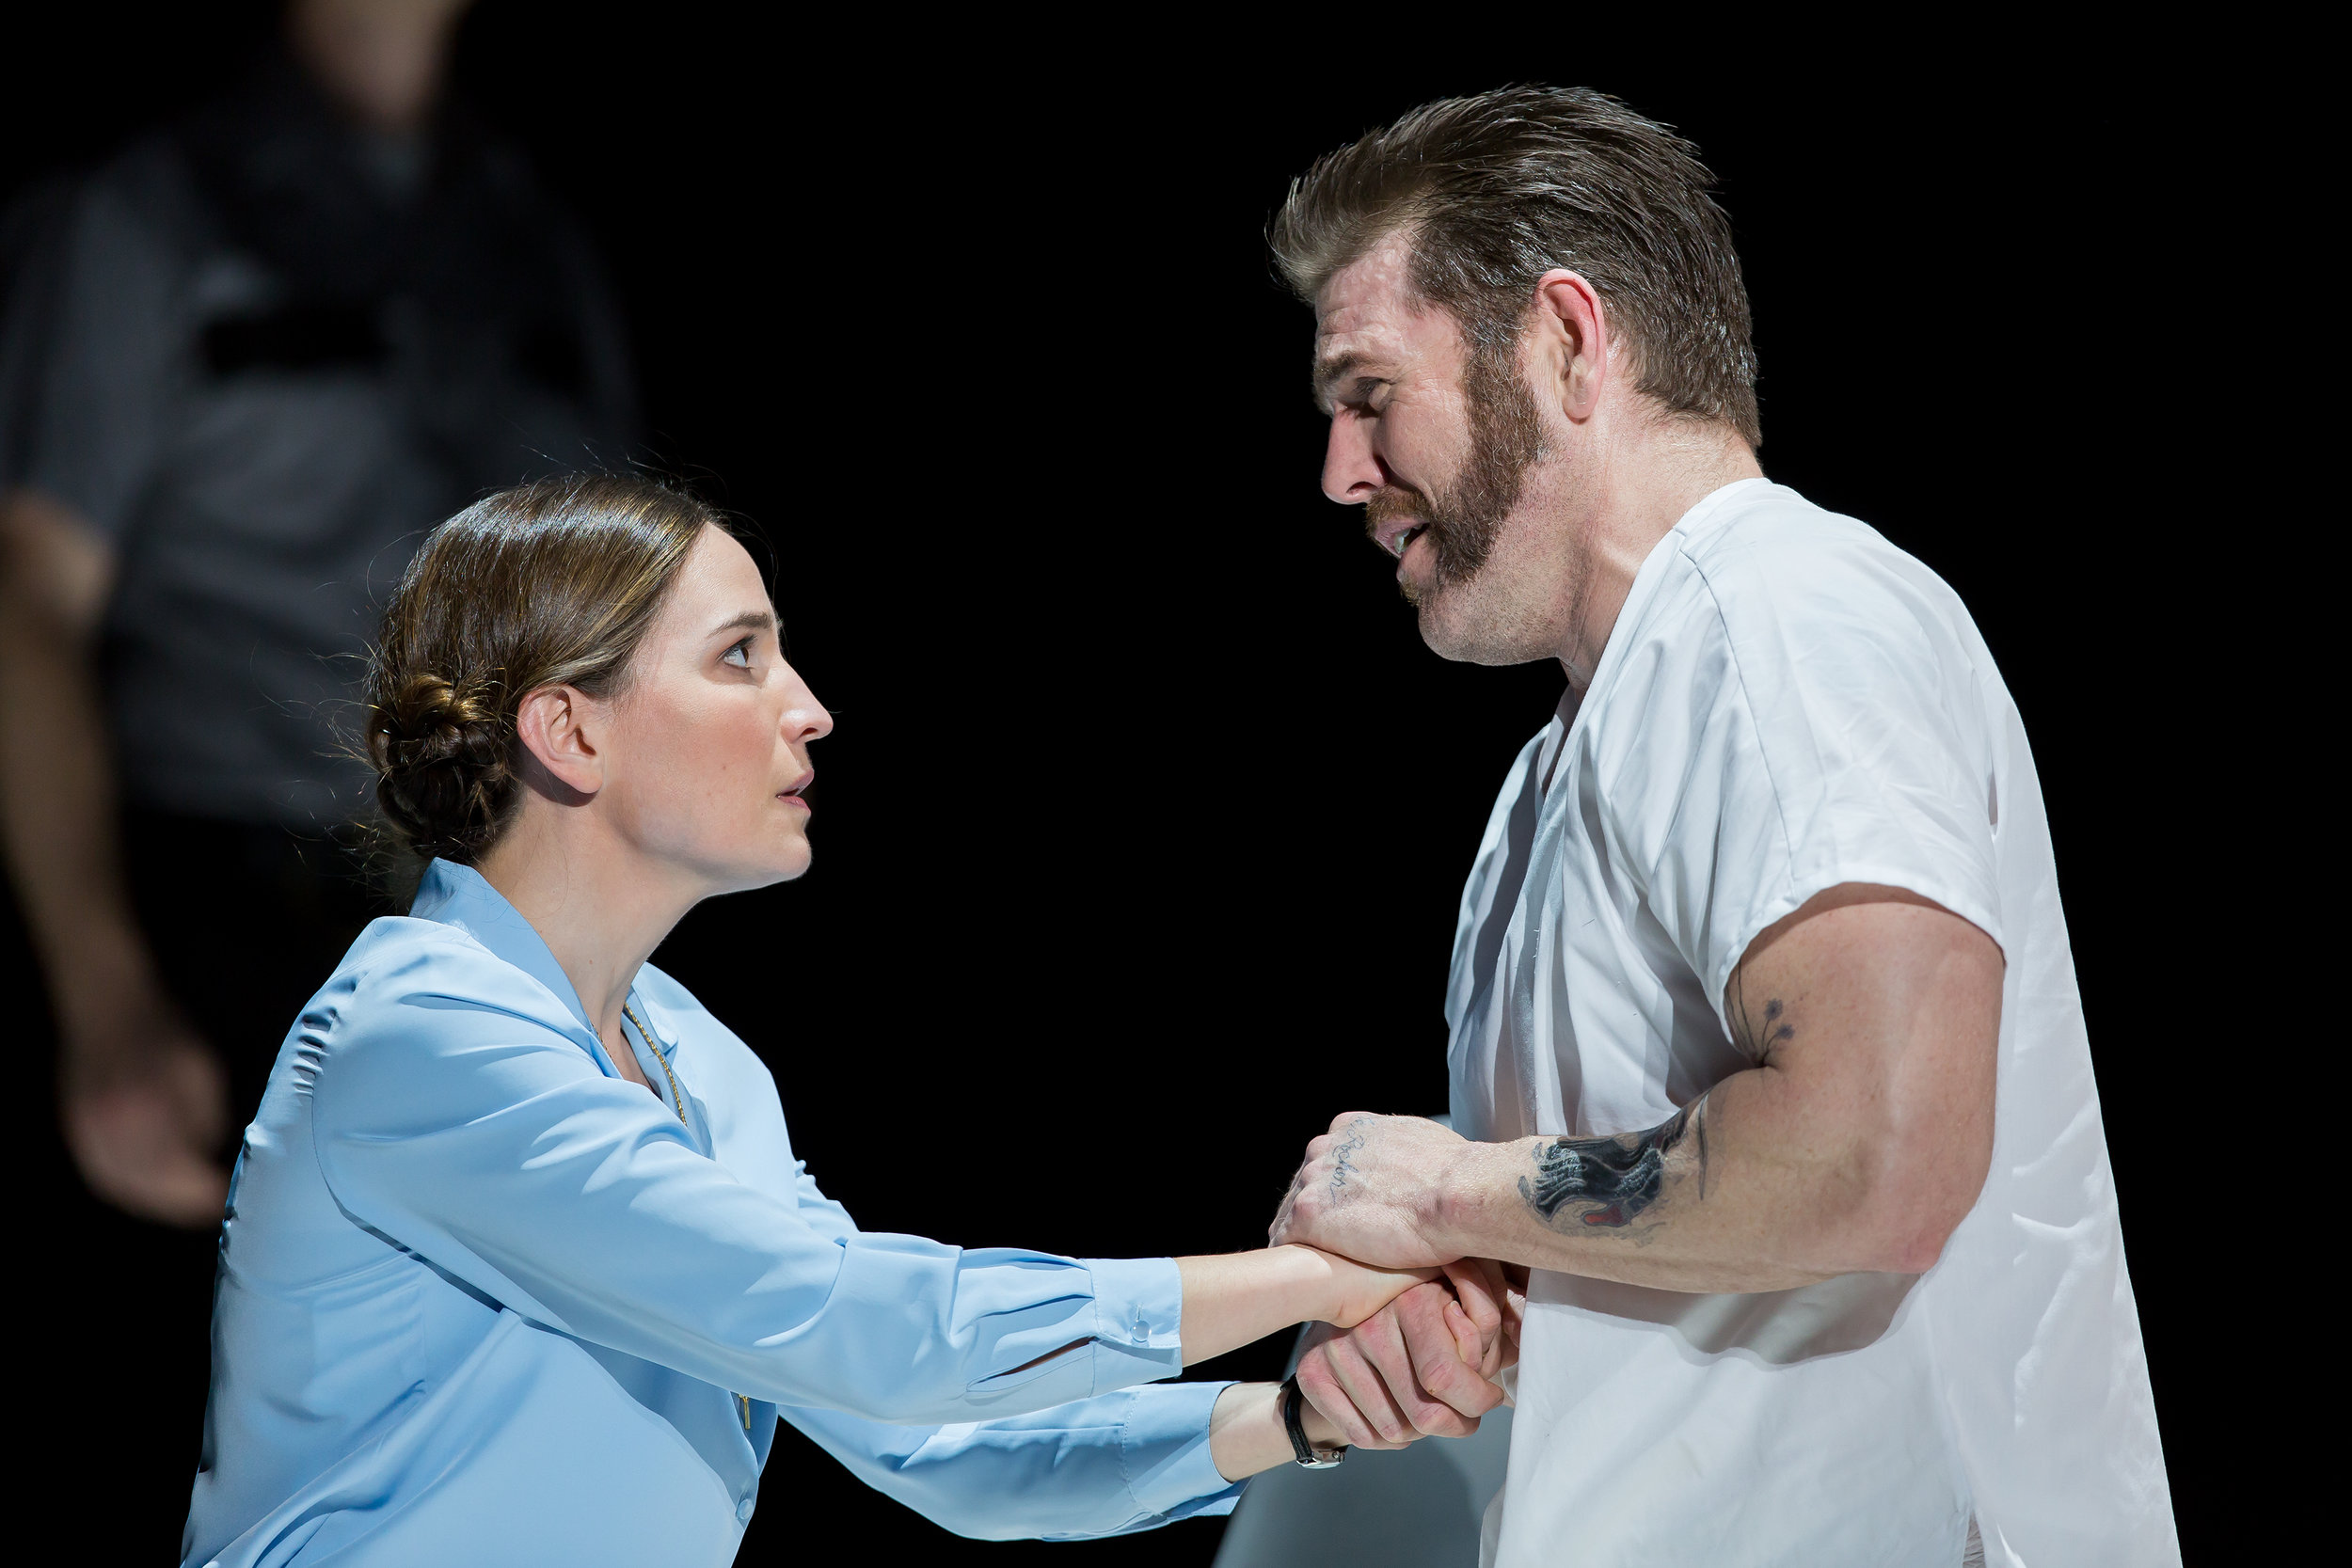 Kate Lindsey as Sister Helen Prejean and Michael Mayes as Joseph De Rocher. Photo by Scott Suchman and courtesy of Washington National Opera.